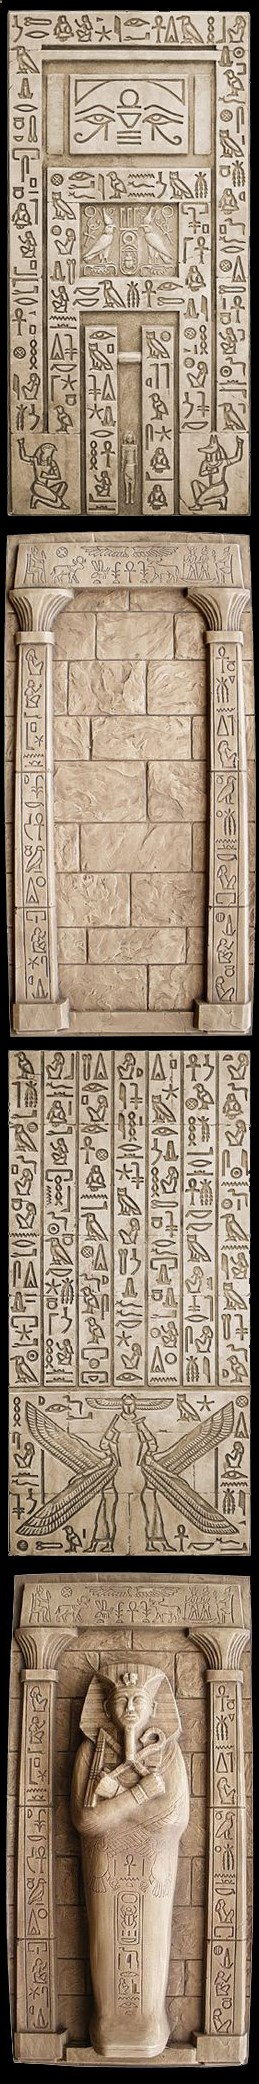 Egypt Isis  Nepthys Hidden Door, Wall with Columns, Isis  Nepthys Wall  Tuts Tomb. With these, you can really make your room look like an Egyptian tomb! Secret of the Mummys Tomb Egyptian Halloween Party Decorations  Ideas More